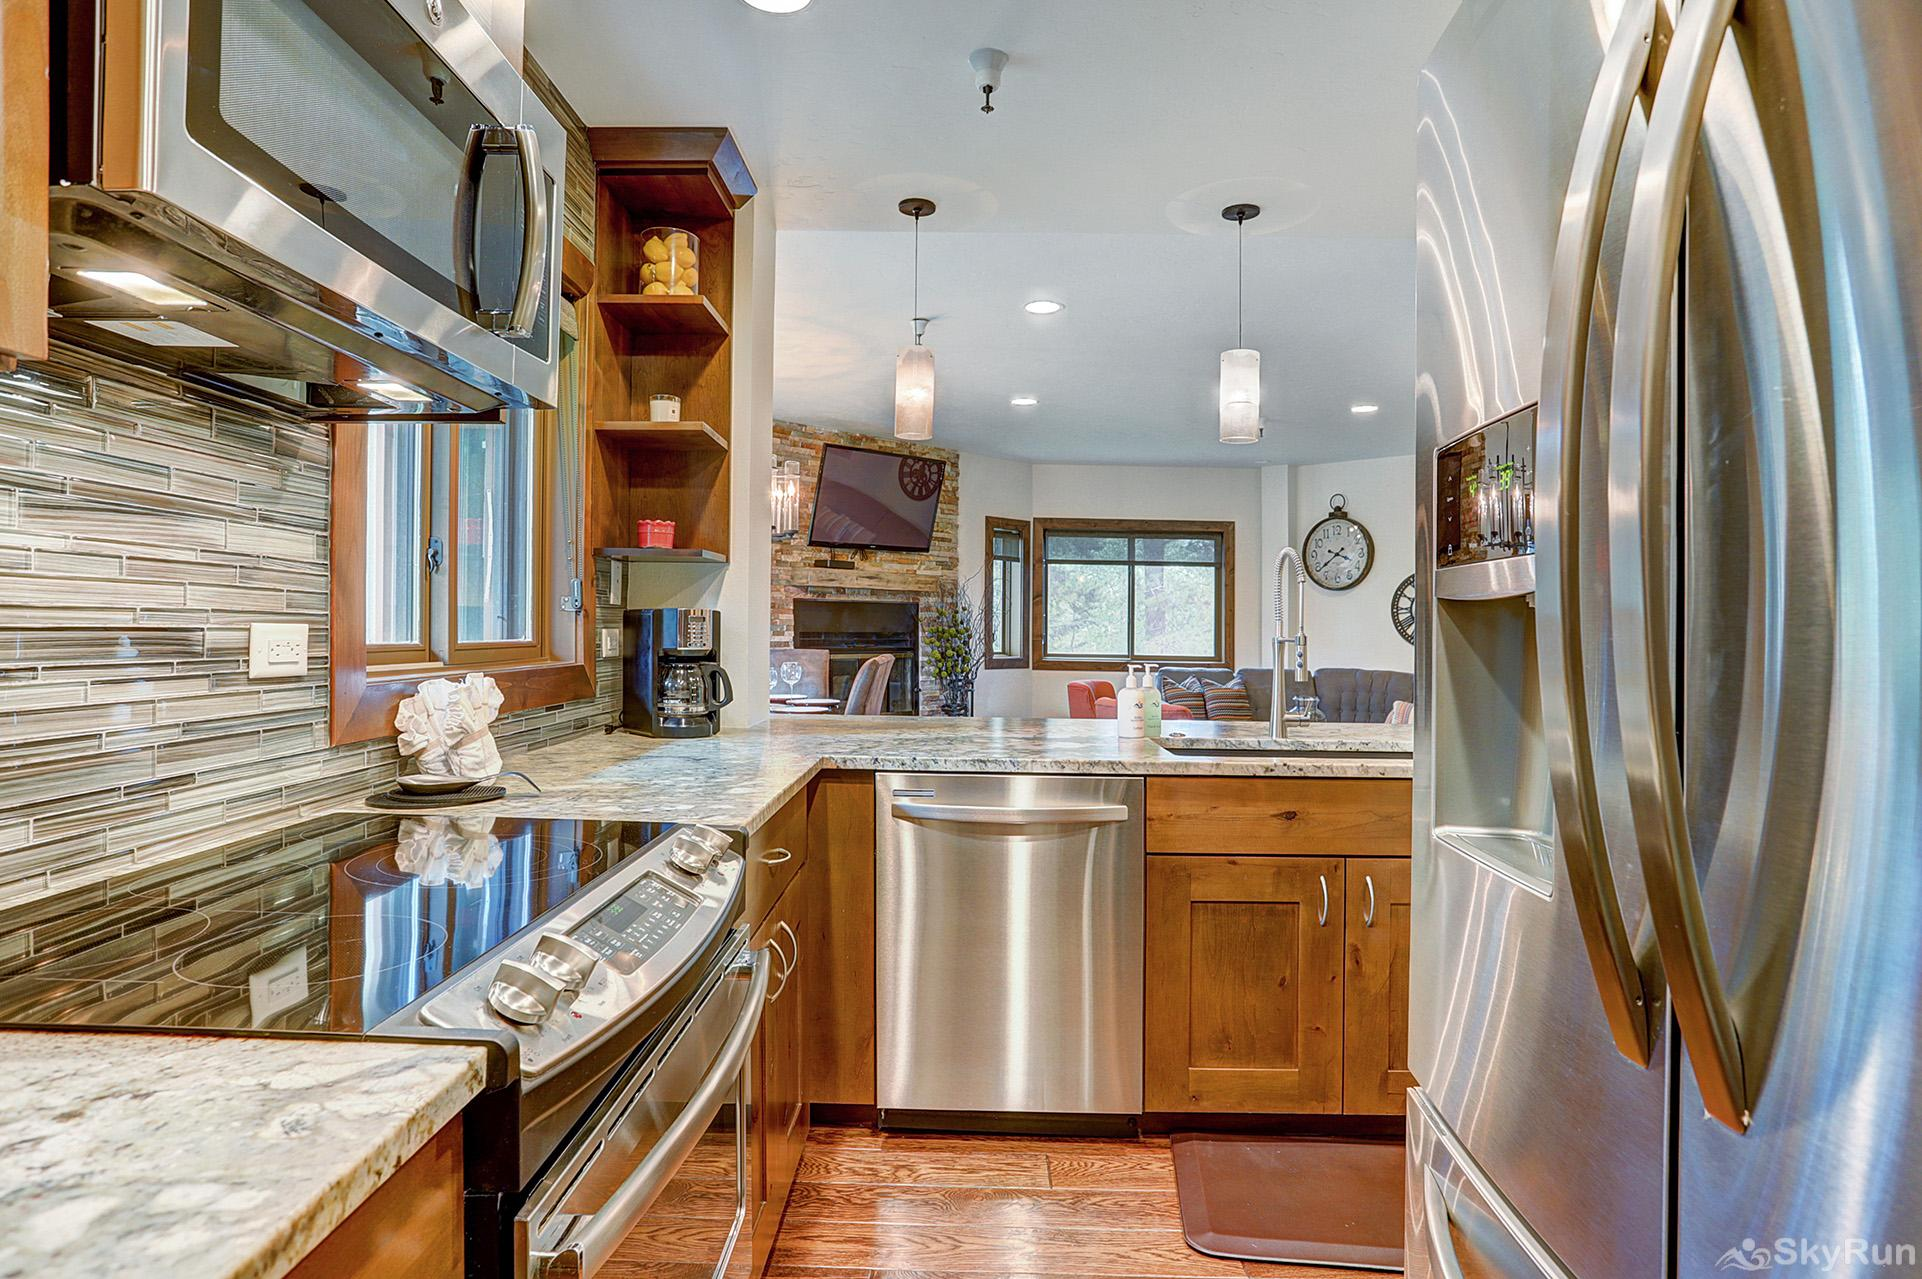 Village at Breck Chateaux 1022 Fully equipped kitchen updated with stainless steel appliances